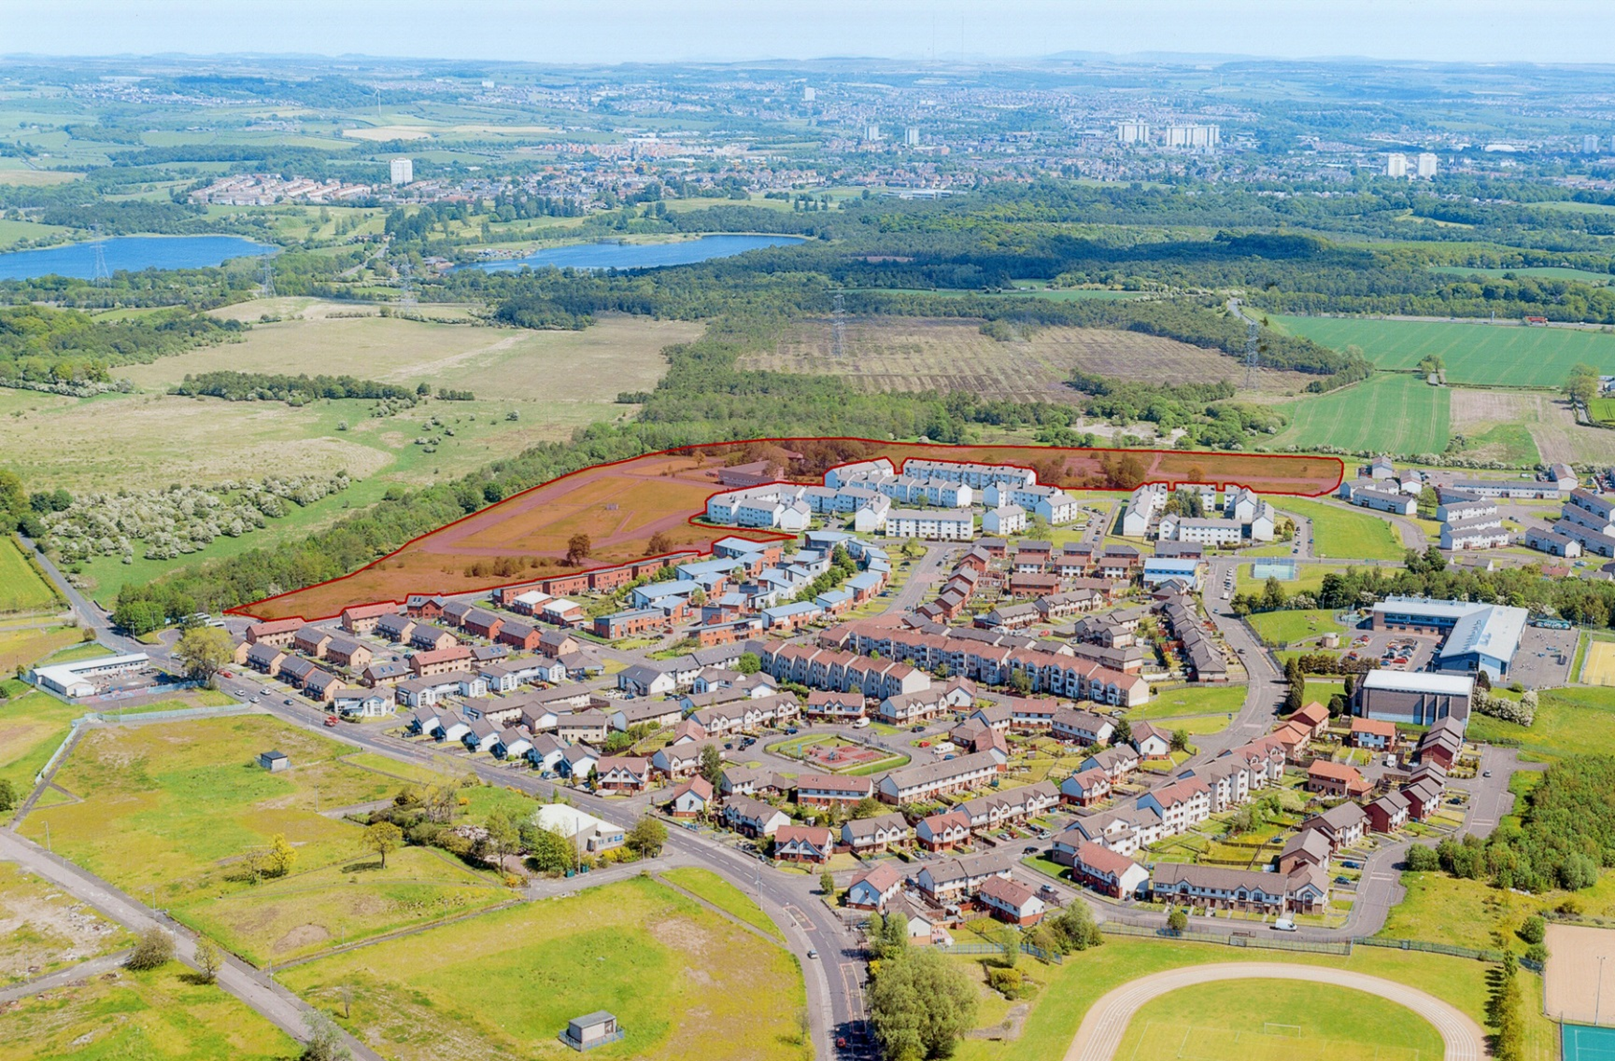 Ariel Photograph with red shading to show Abbeycraig development site